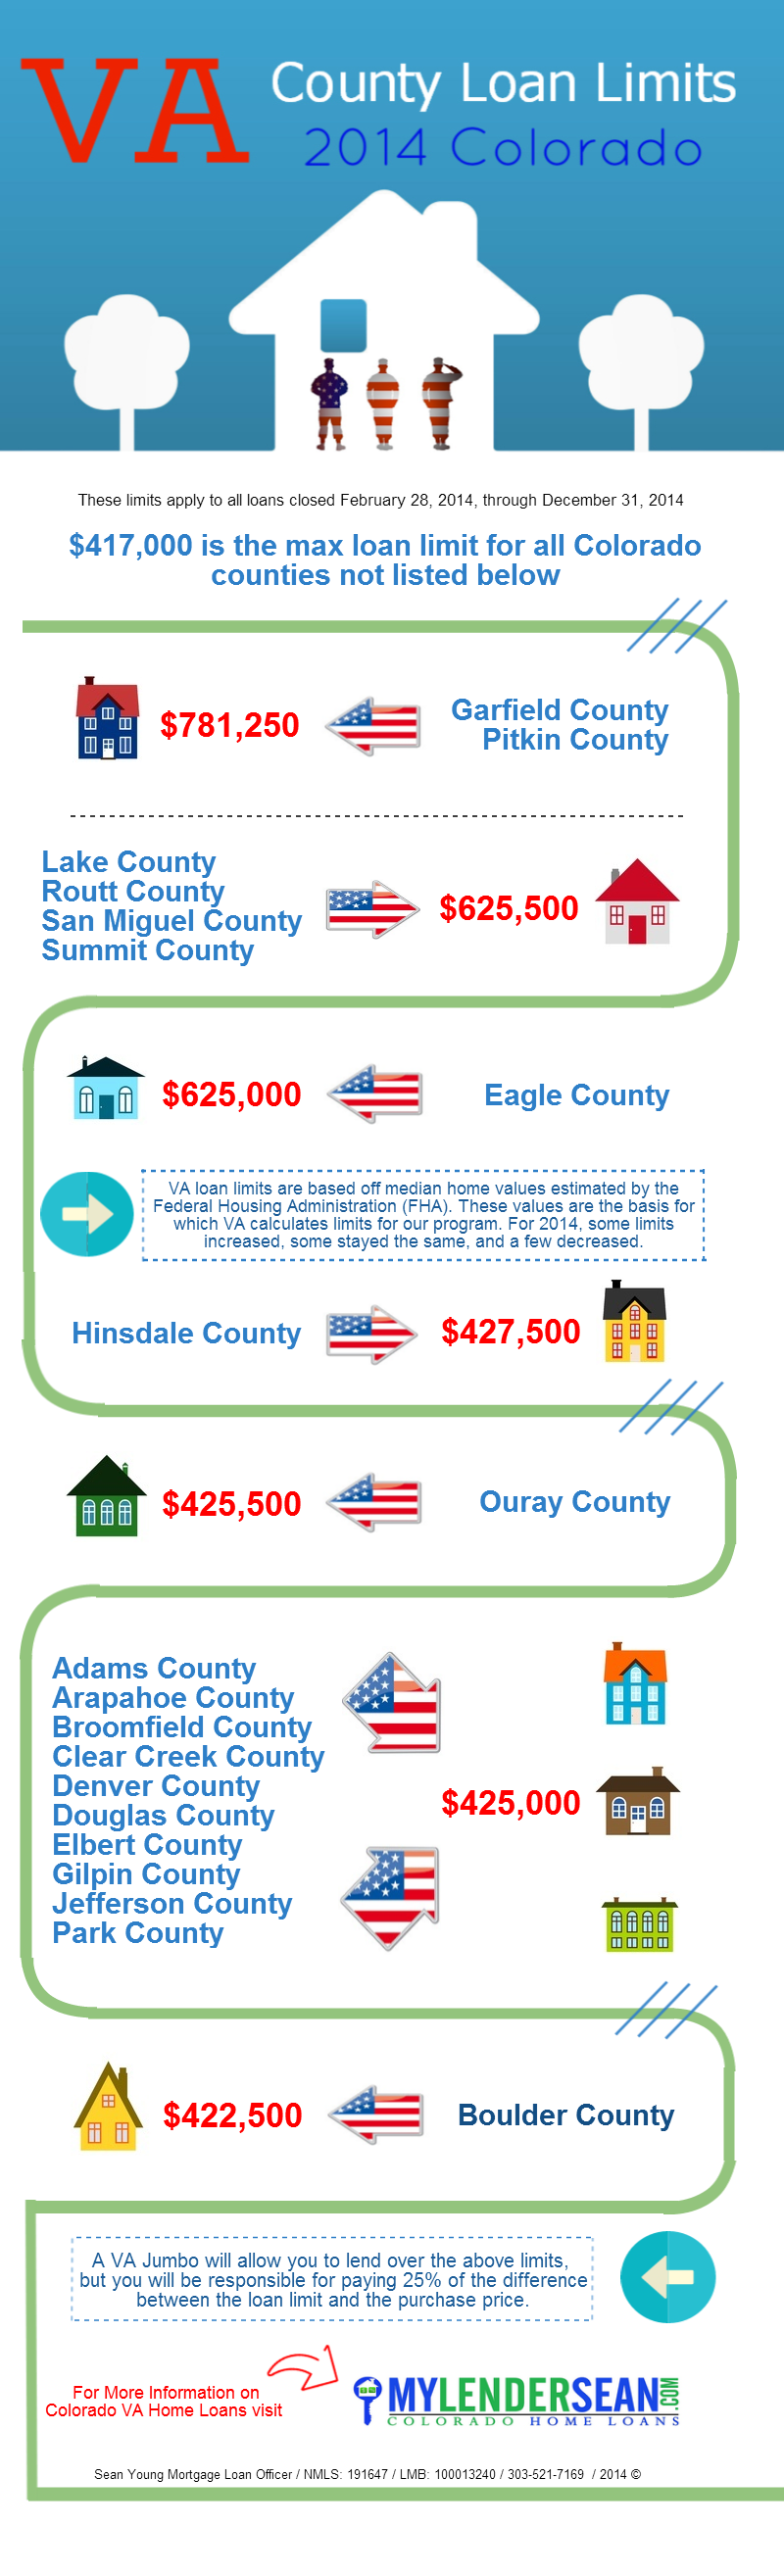 VA County Loan Limits - 2014 Colorado Infographic 2